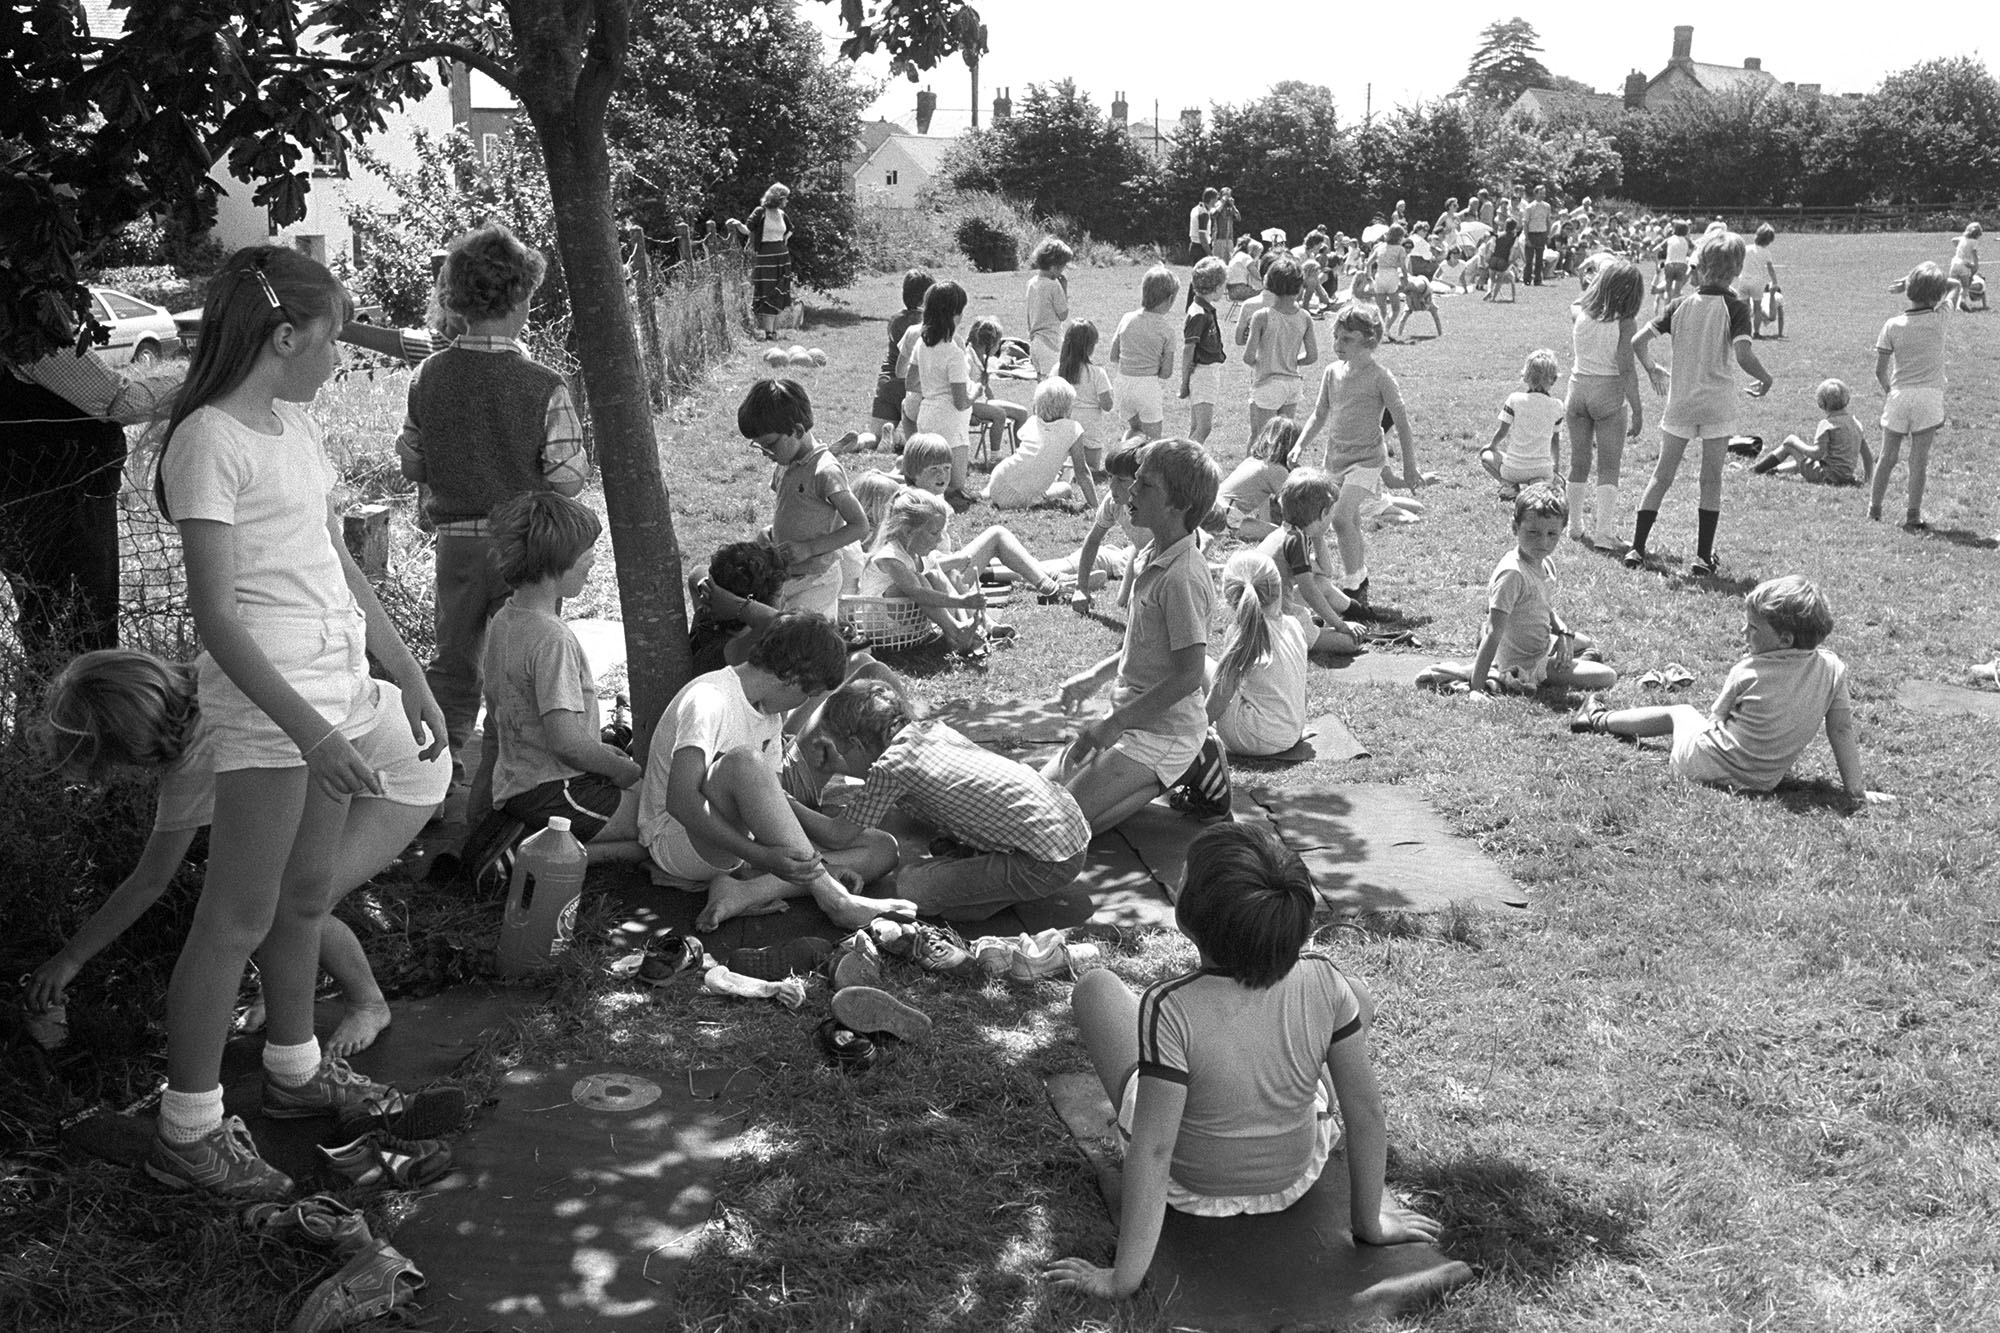 School sports day, races, people sitting in sun and shade waiting to run. <br /> [Children sitting in the sun and under the shade of a tree at Dolton School Sports Day. In the background children are taking part in a wheelbarrow race.]